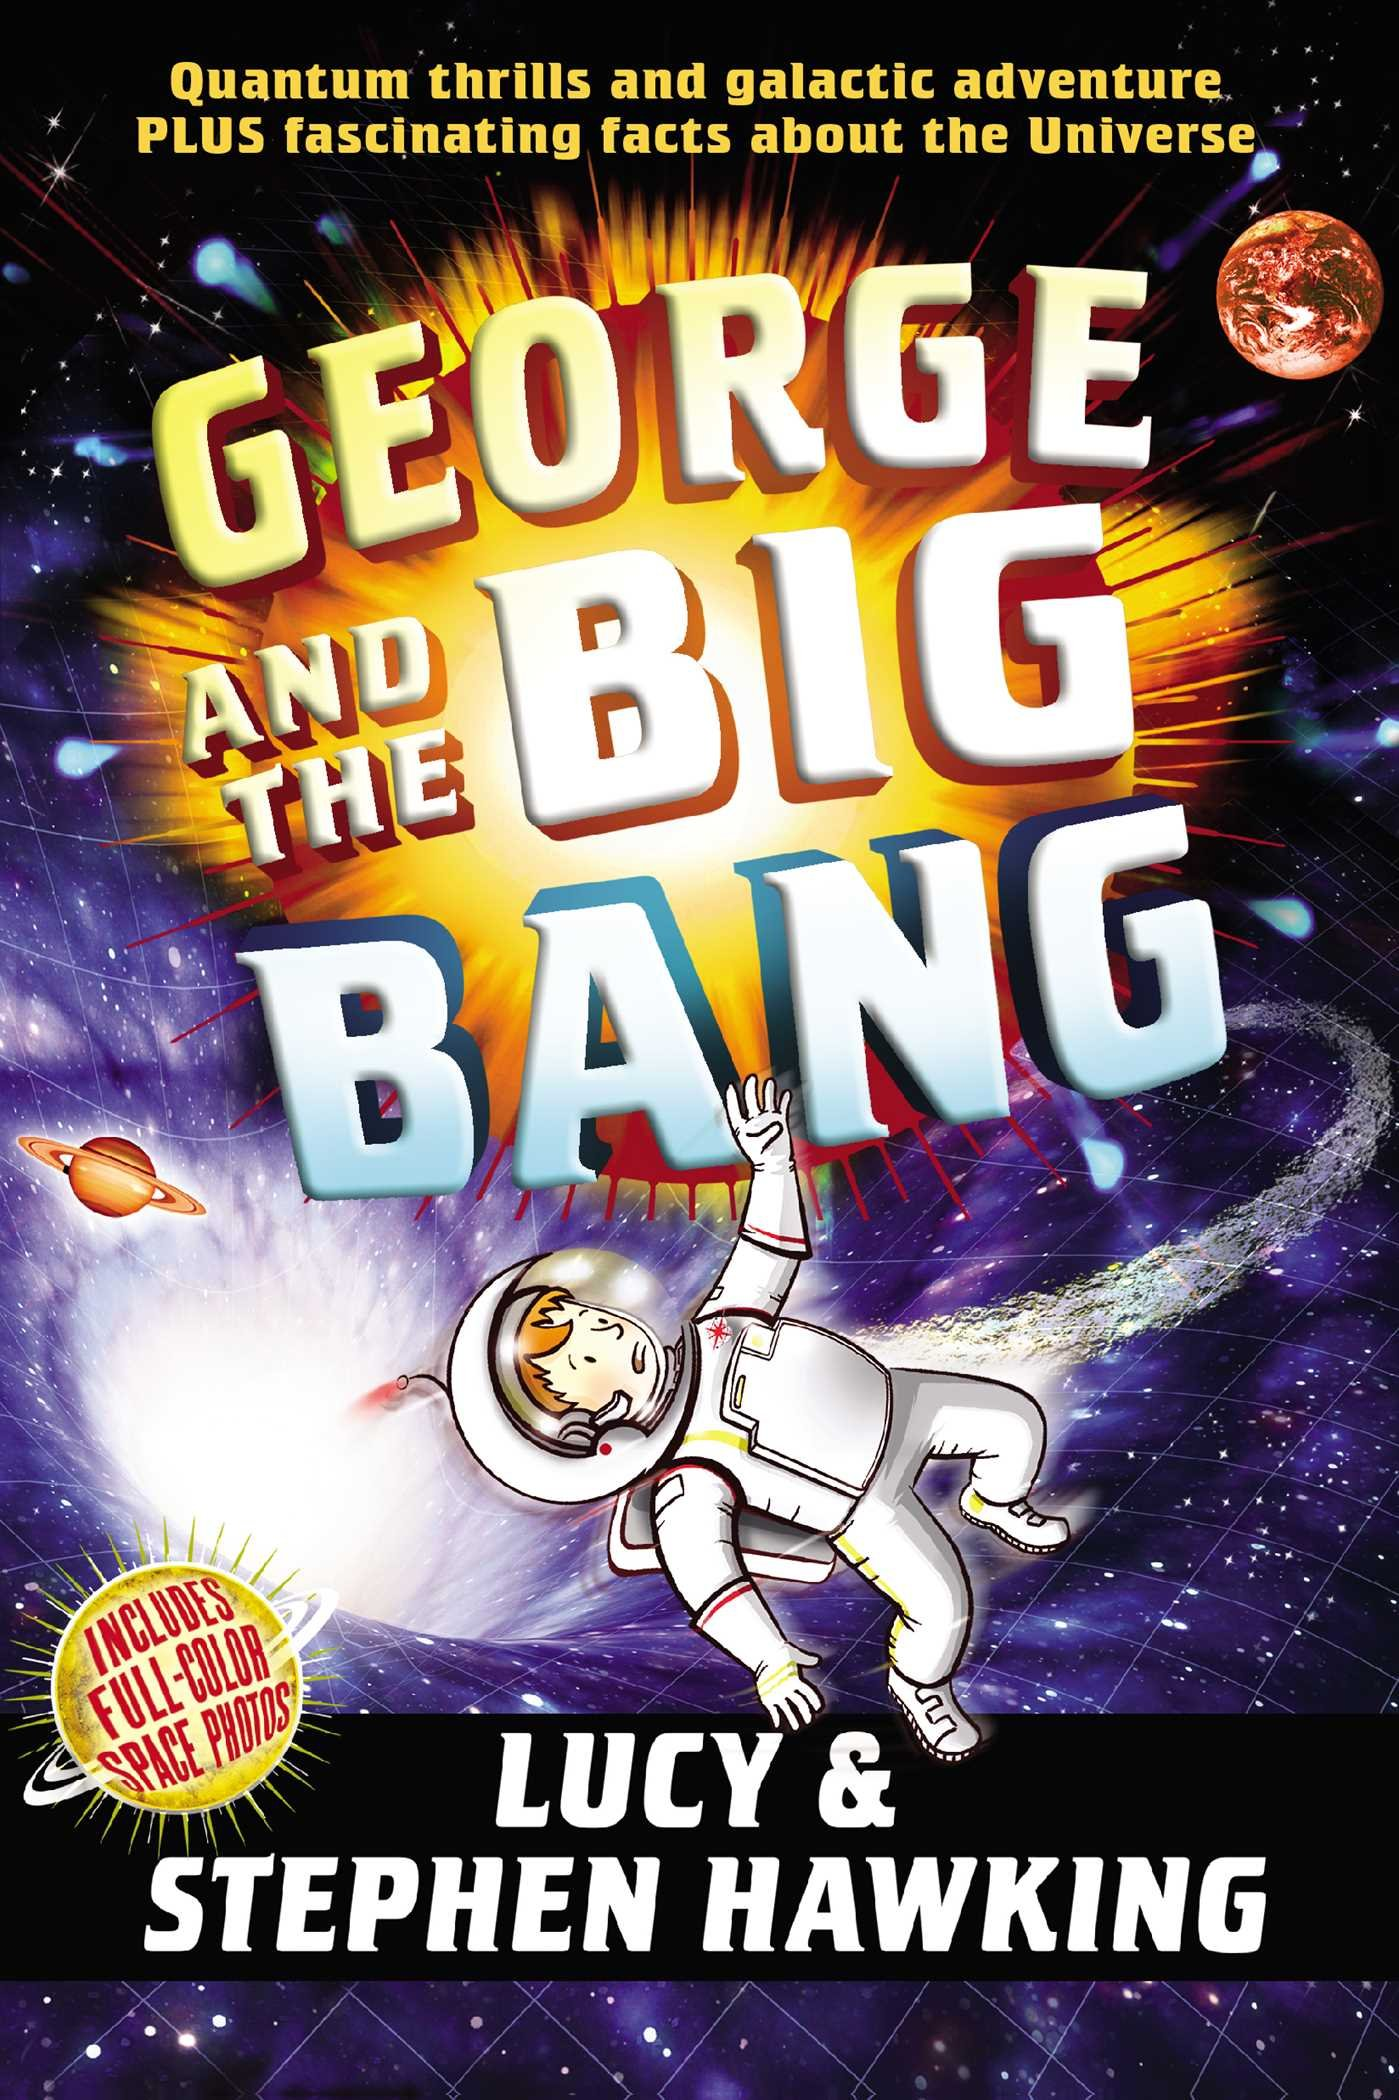 George and the Big Bang (Georges Secret Key): Amazon.es: Stephen Hawking, Lucy Hawking, Garry Parsons: Libros en idiomas extranjeros